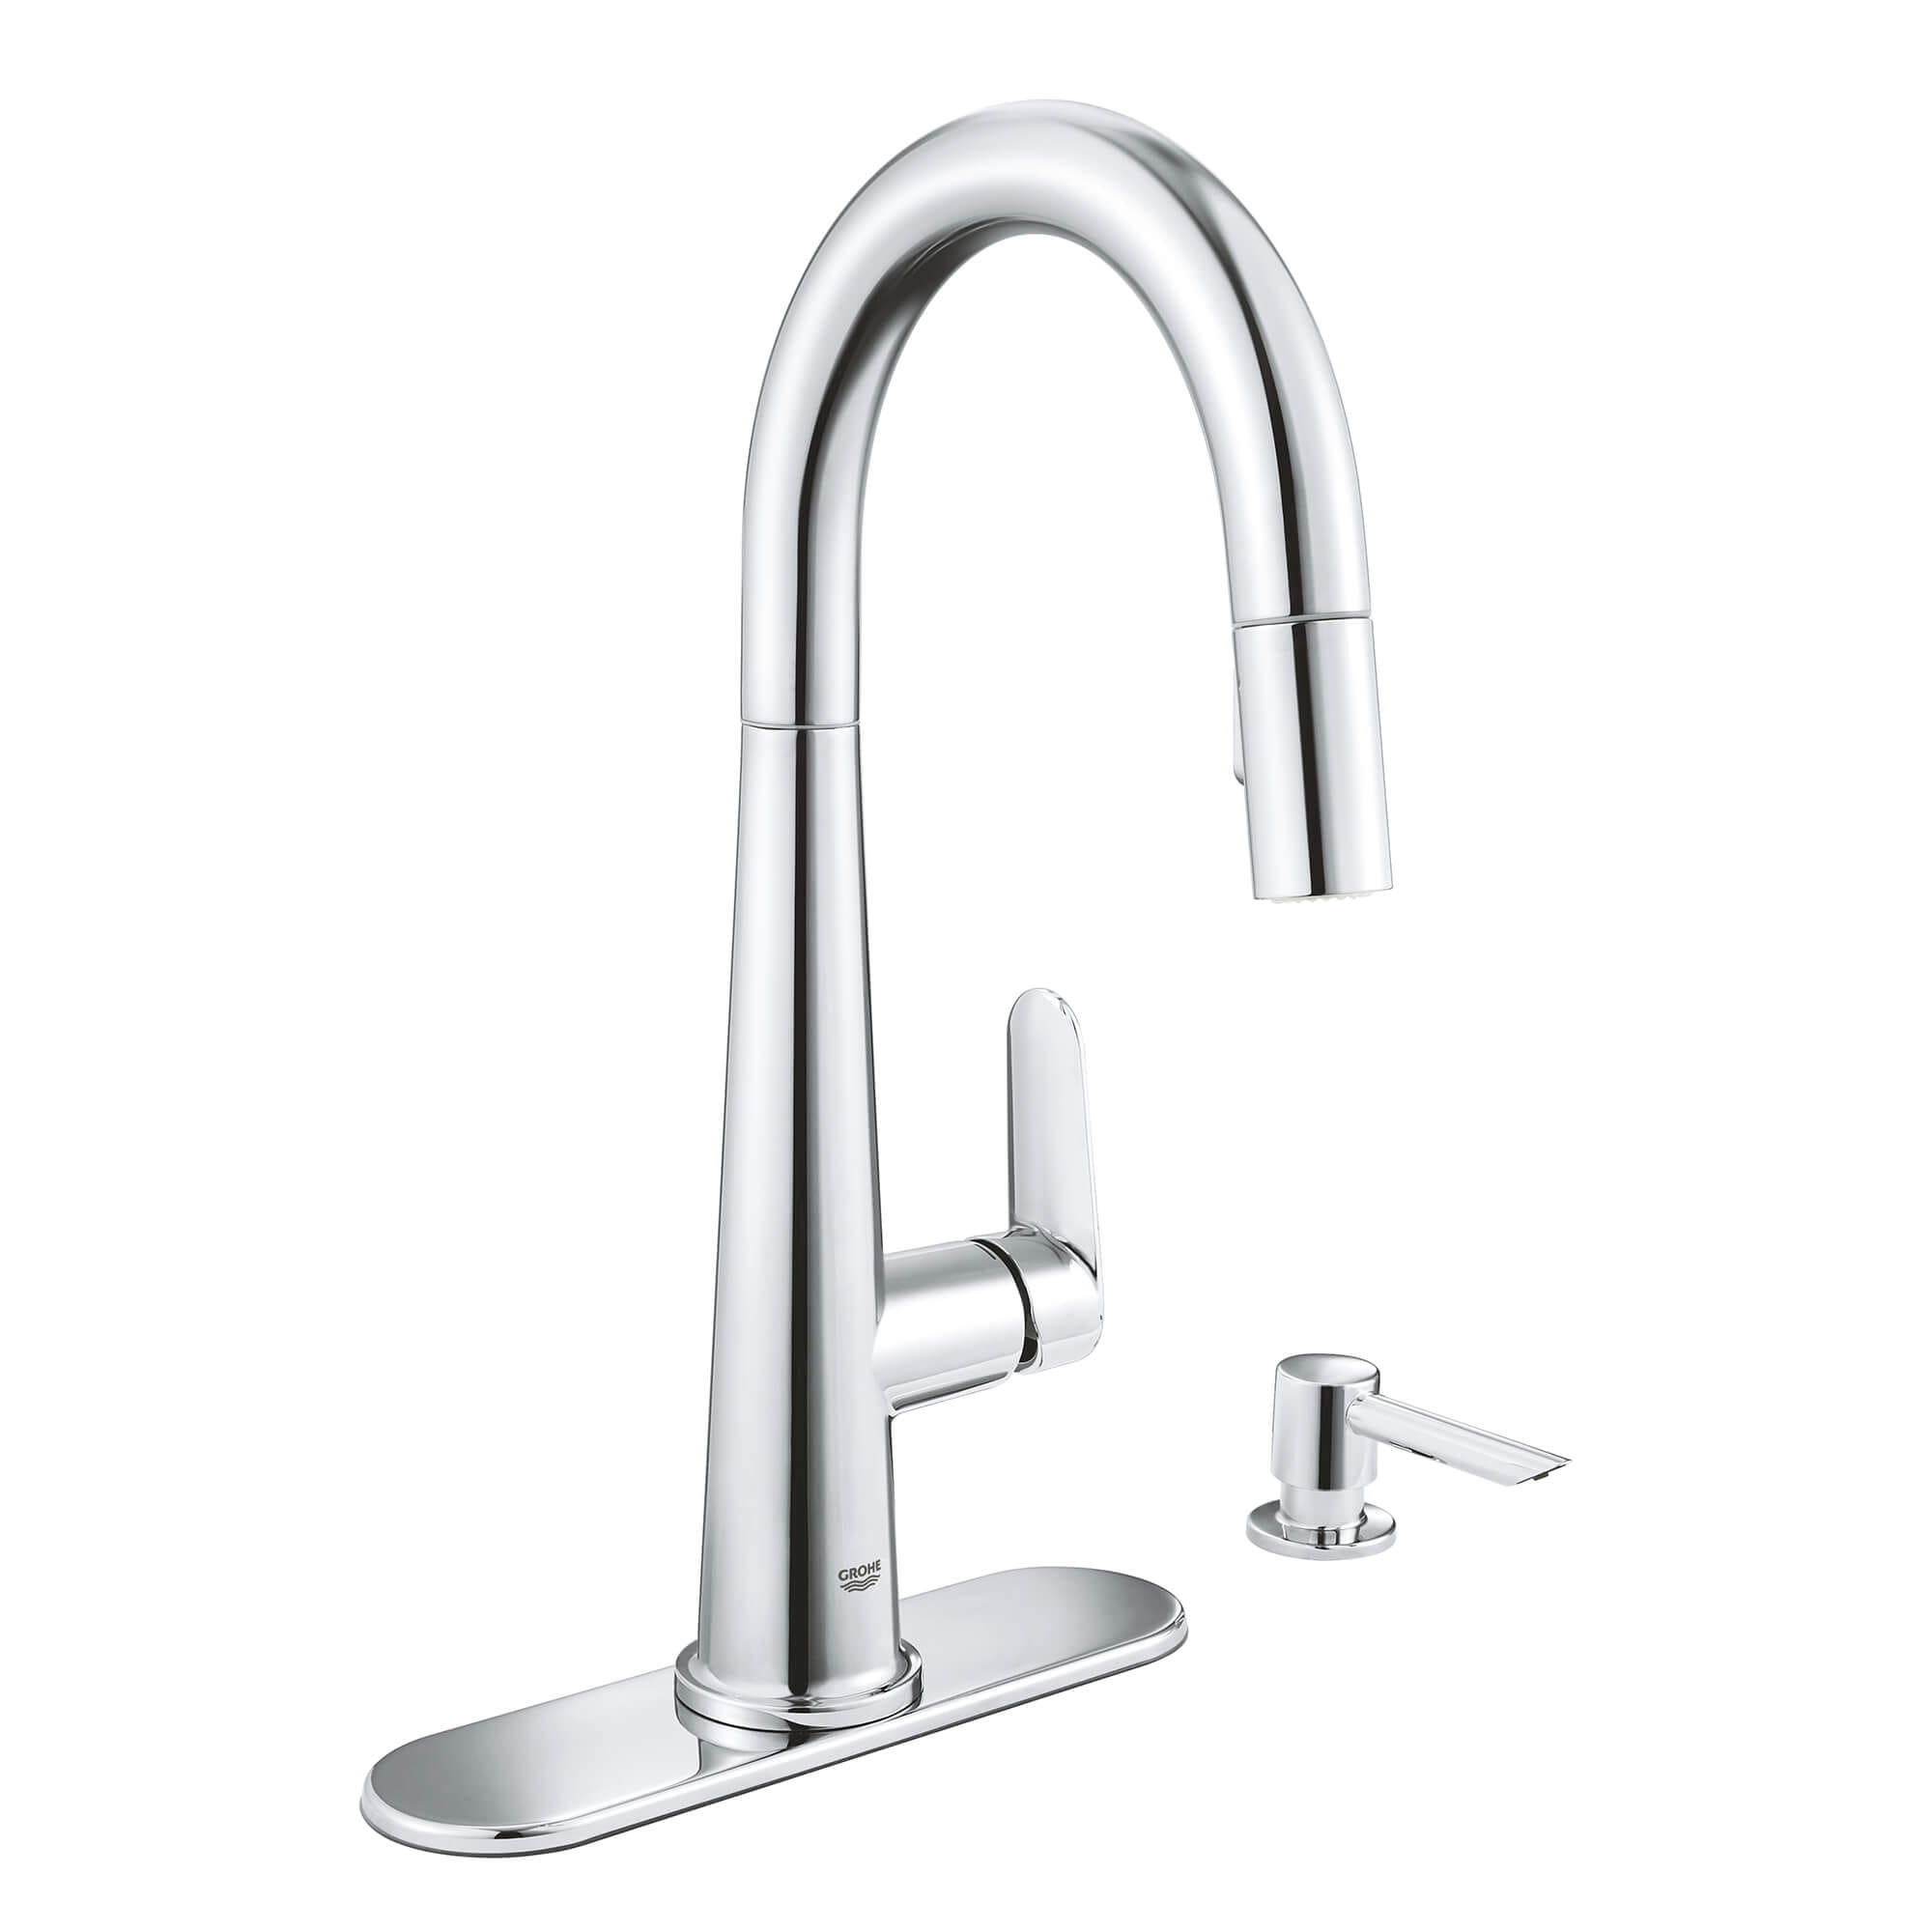 single handle pull down kitchen faucet 6 6 l min 1 75 gpm